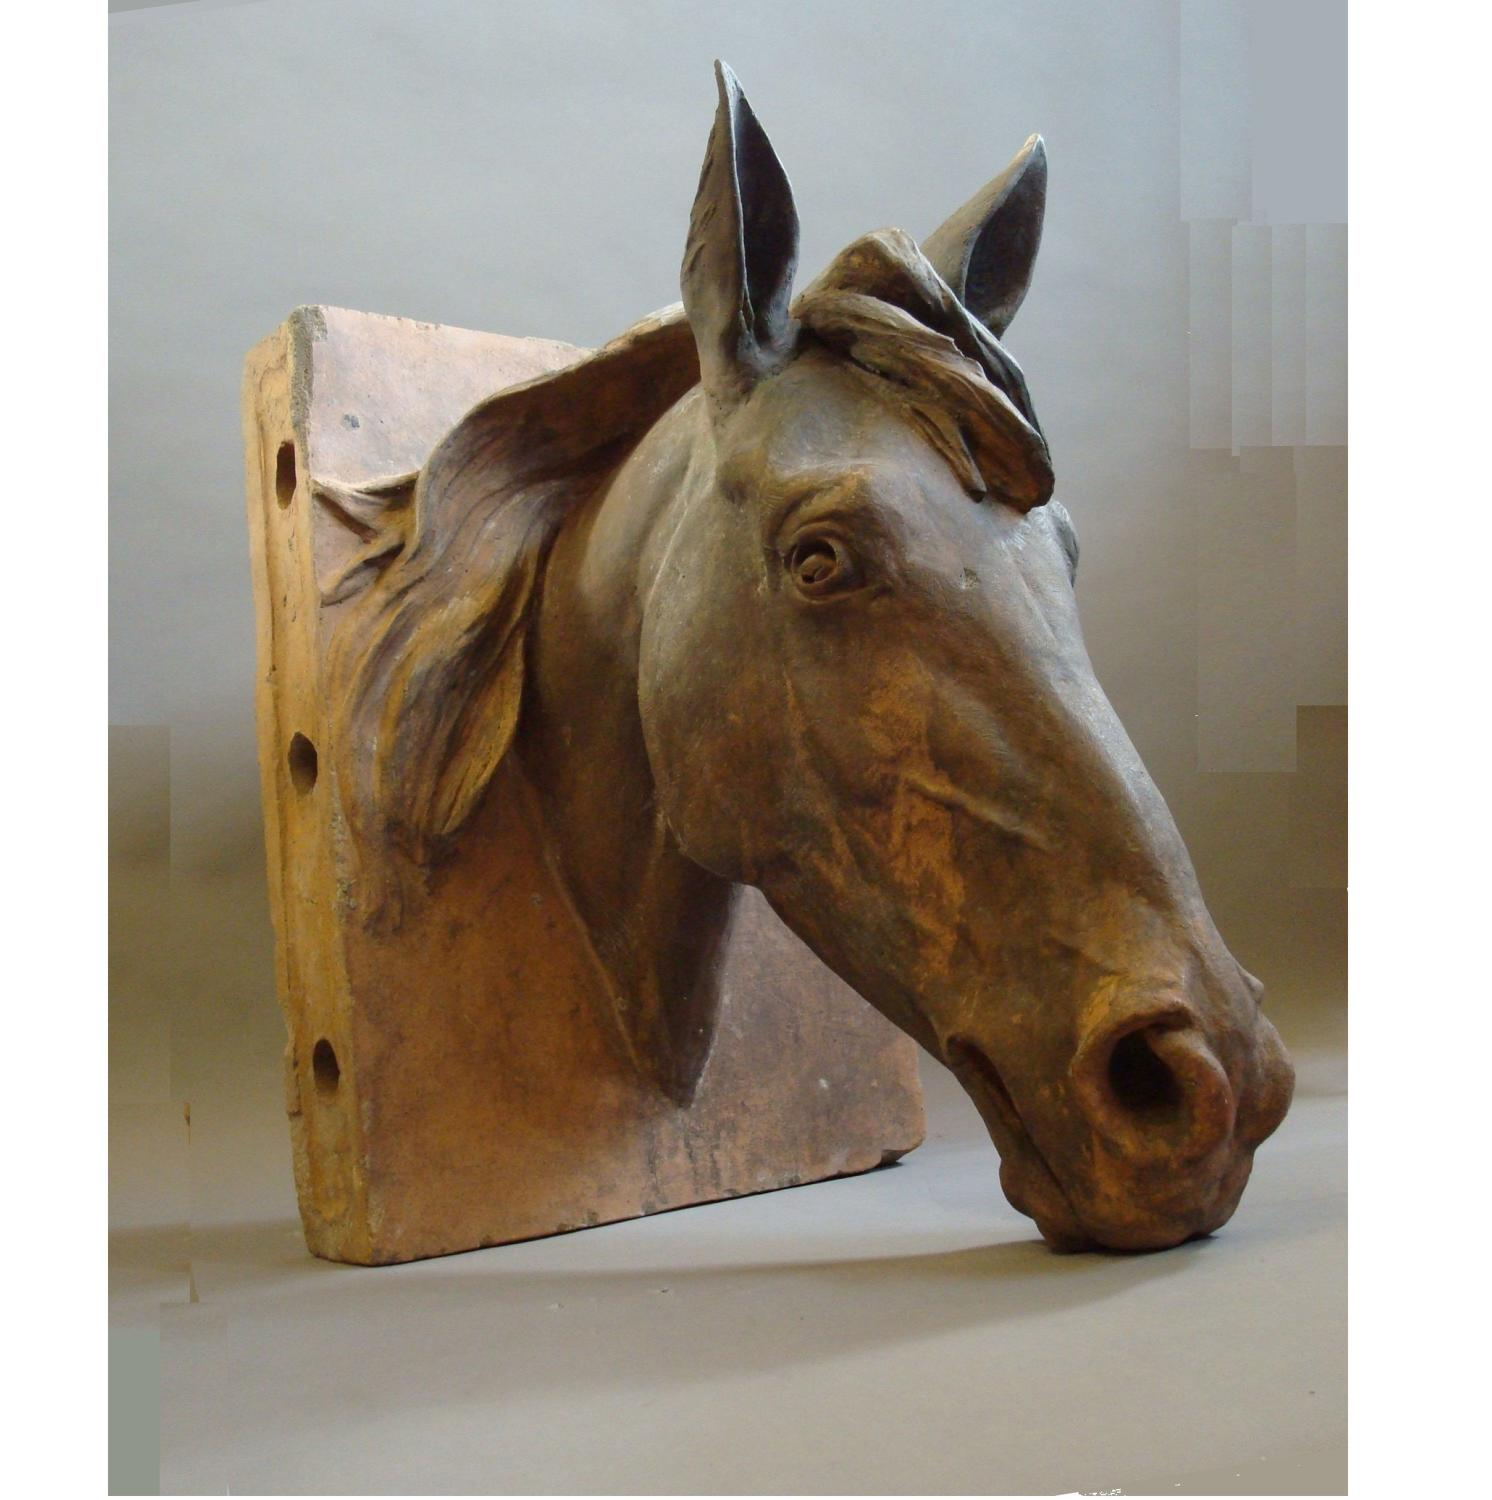 C19th terracotta life size horses head